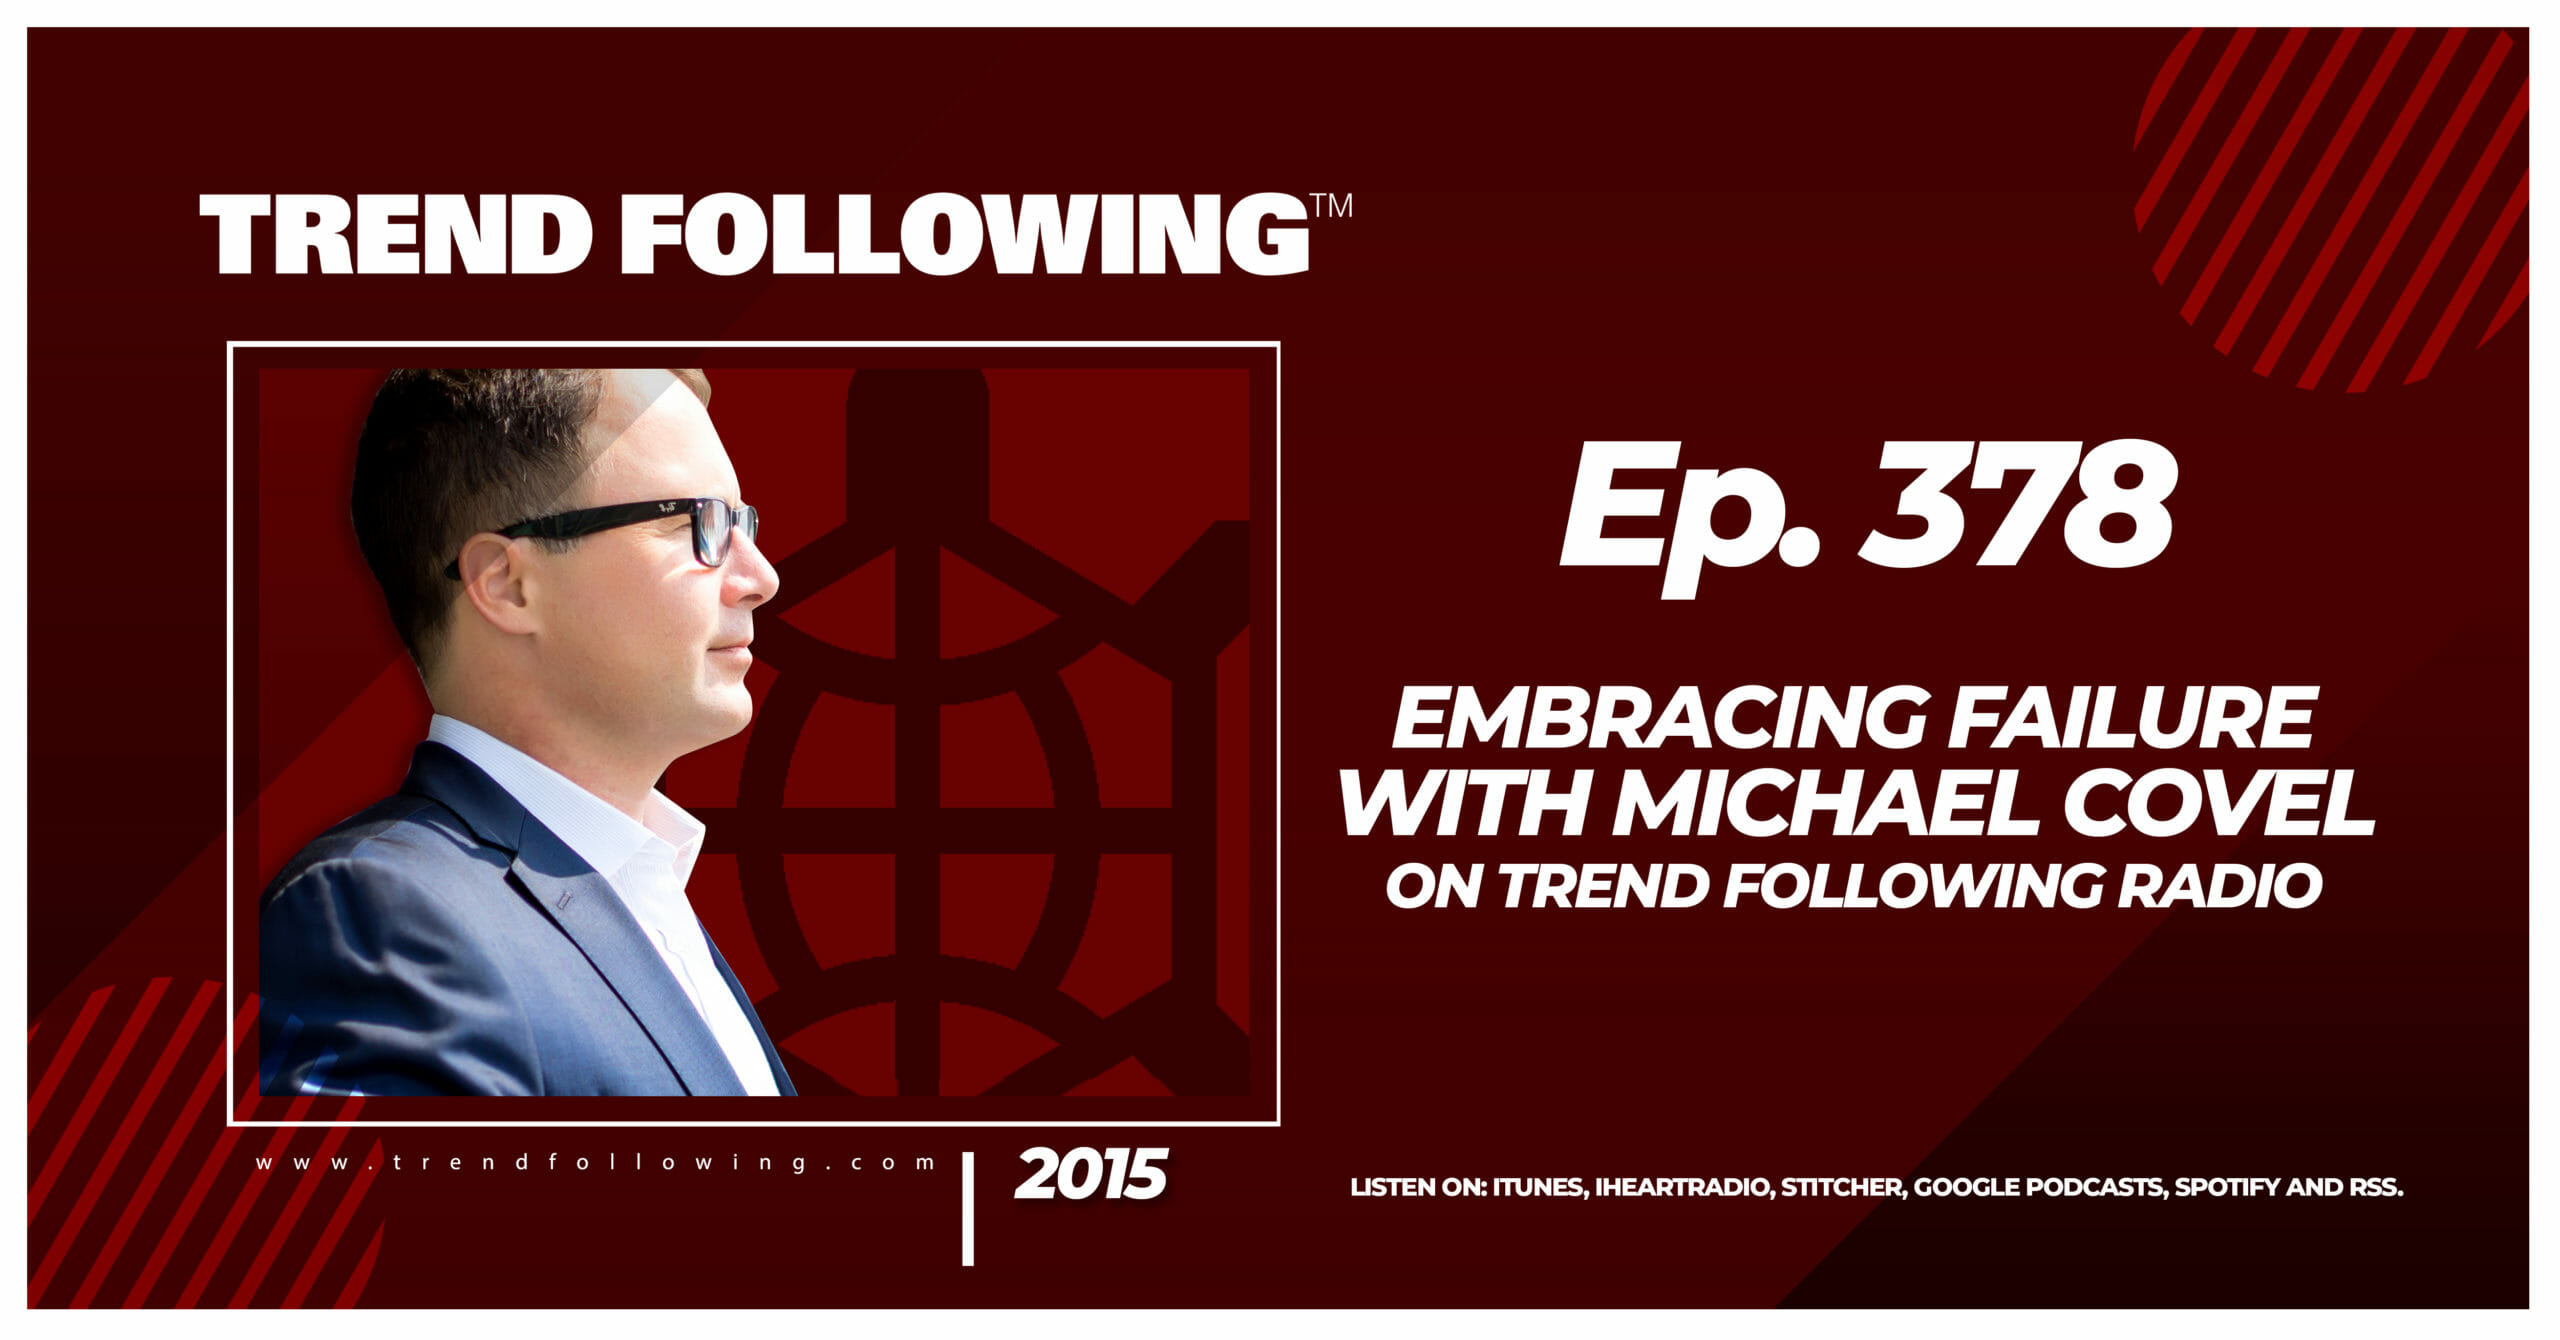 Embracing Failure with Michael Covel on Trend Following Radio